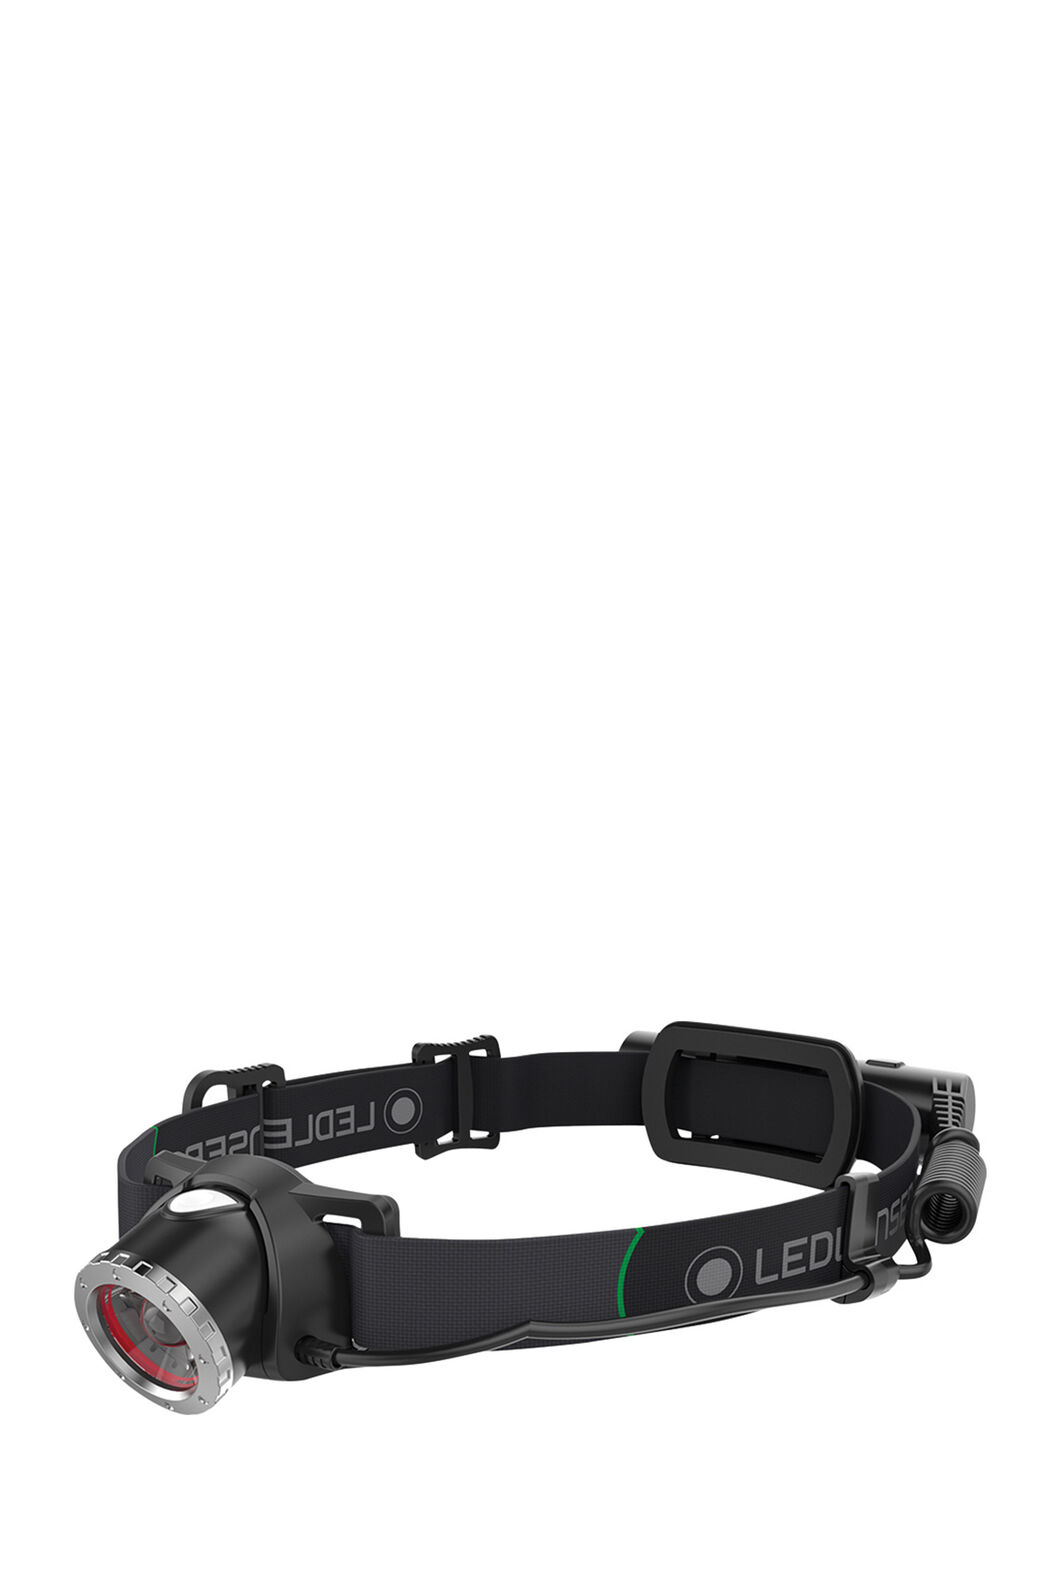 Led Lenser Outdoor Series MH10 Headlamp, None, hi-res